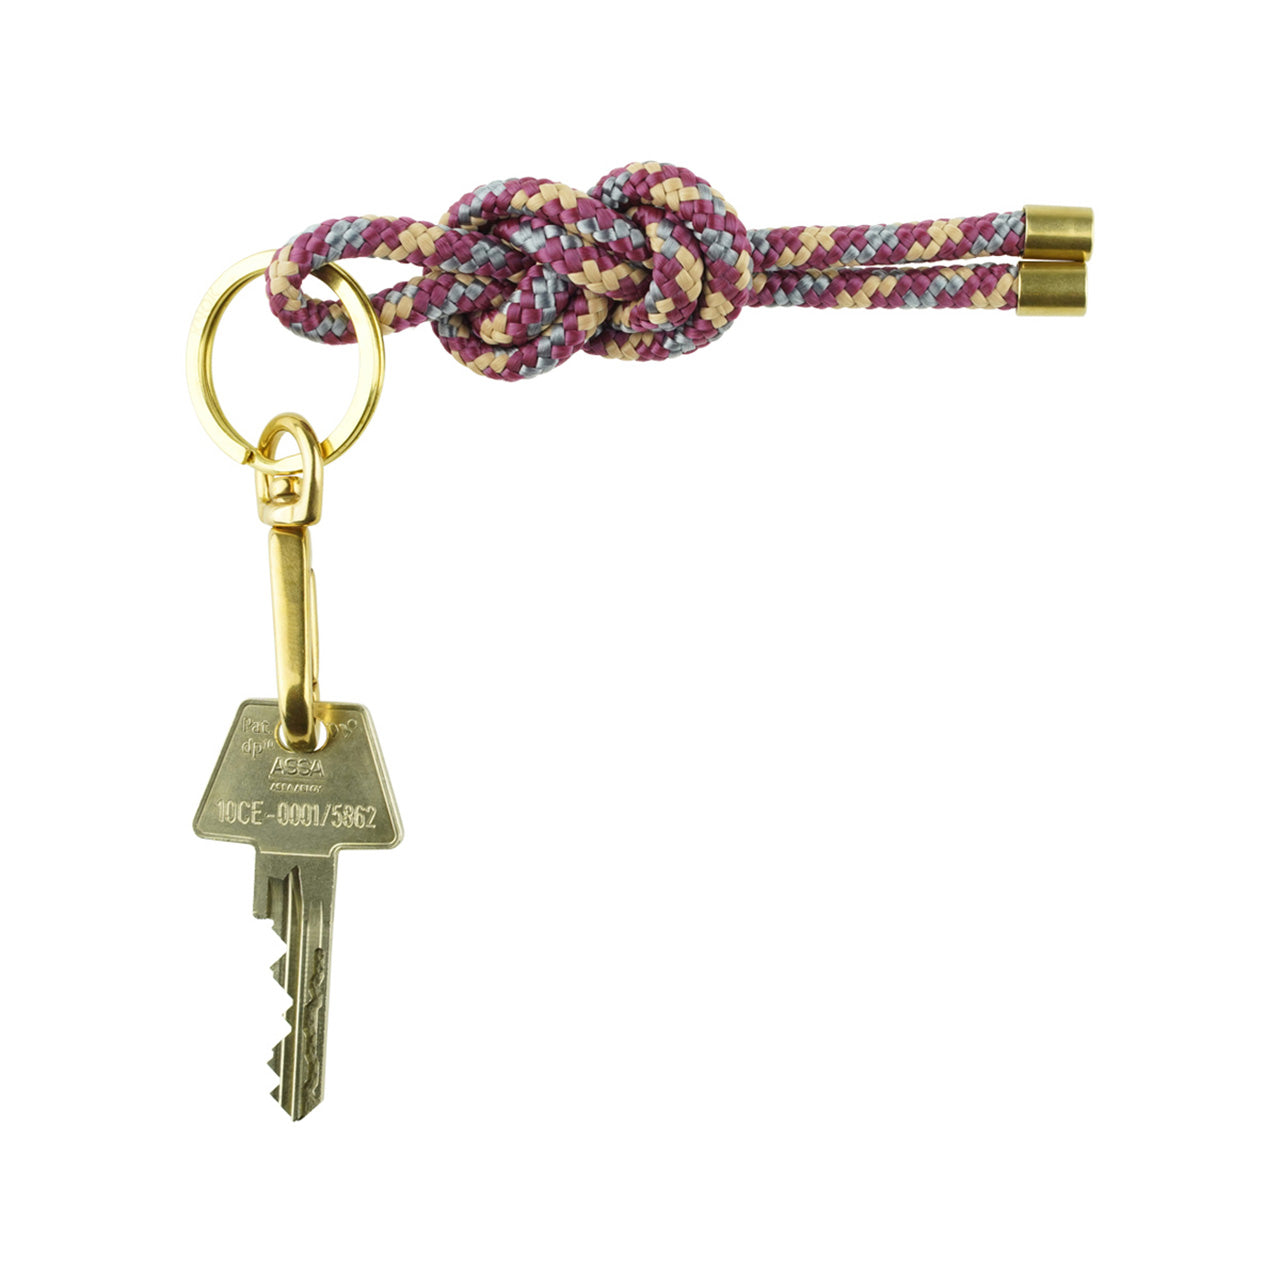 KNOK-KEY-KNOT-bordeaux